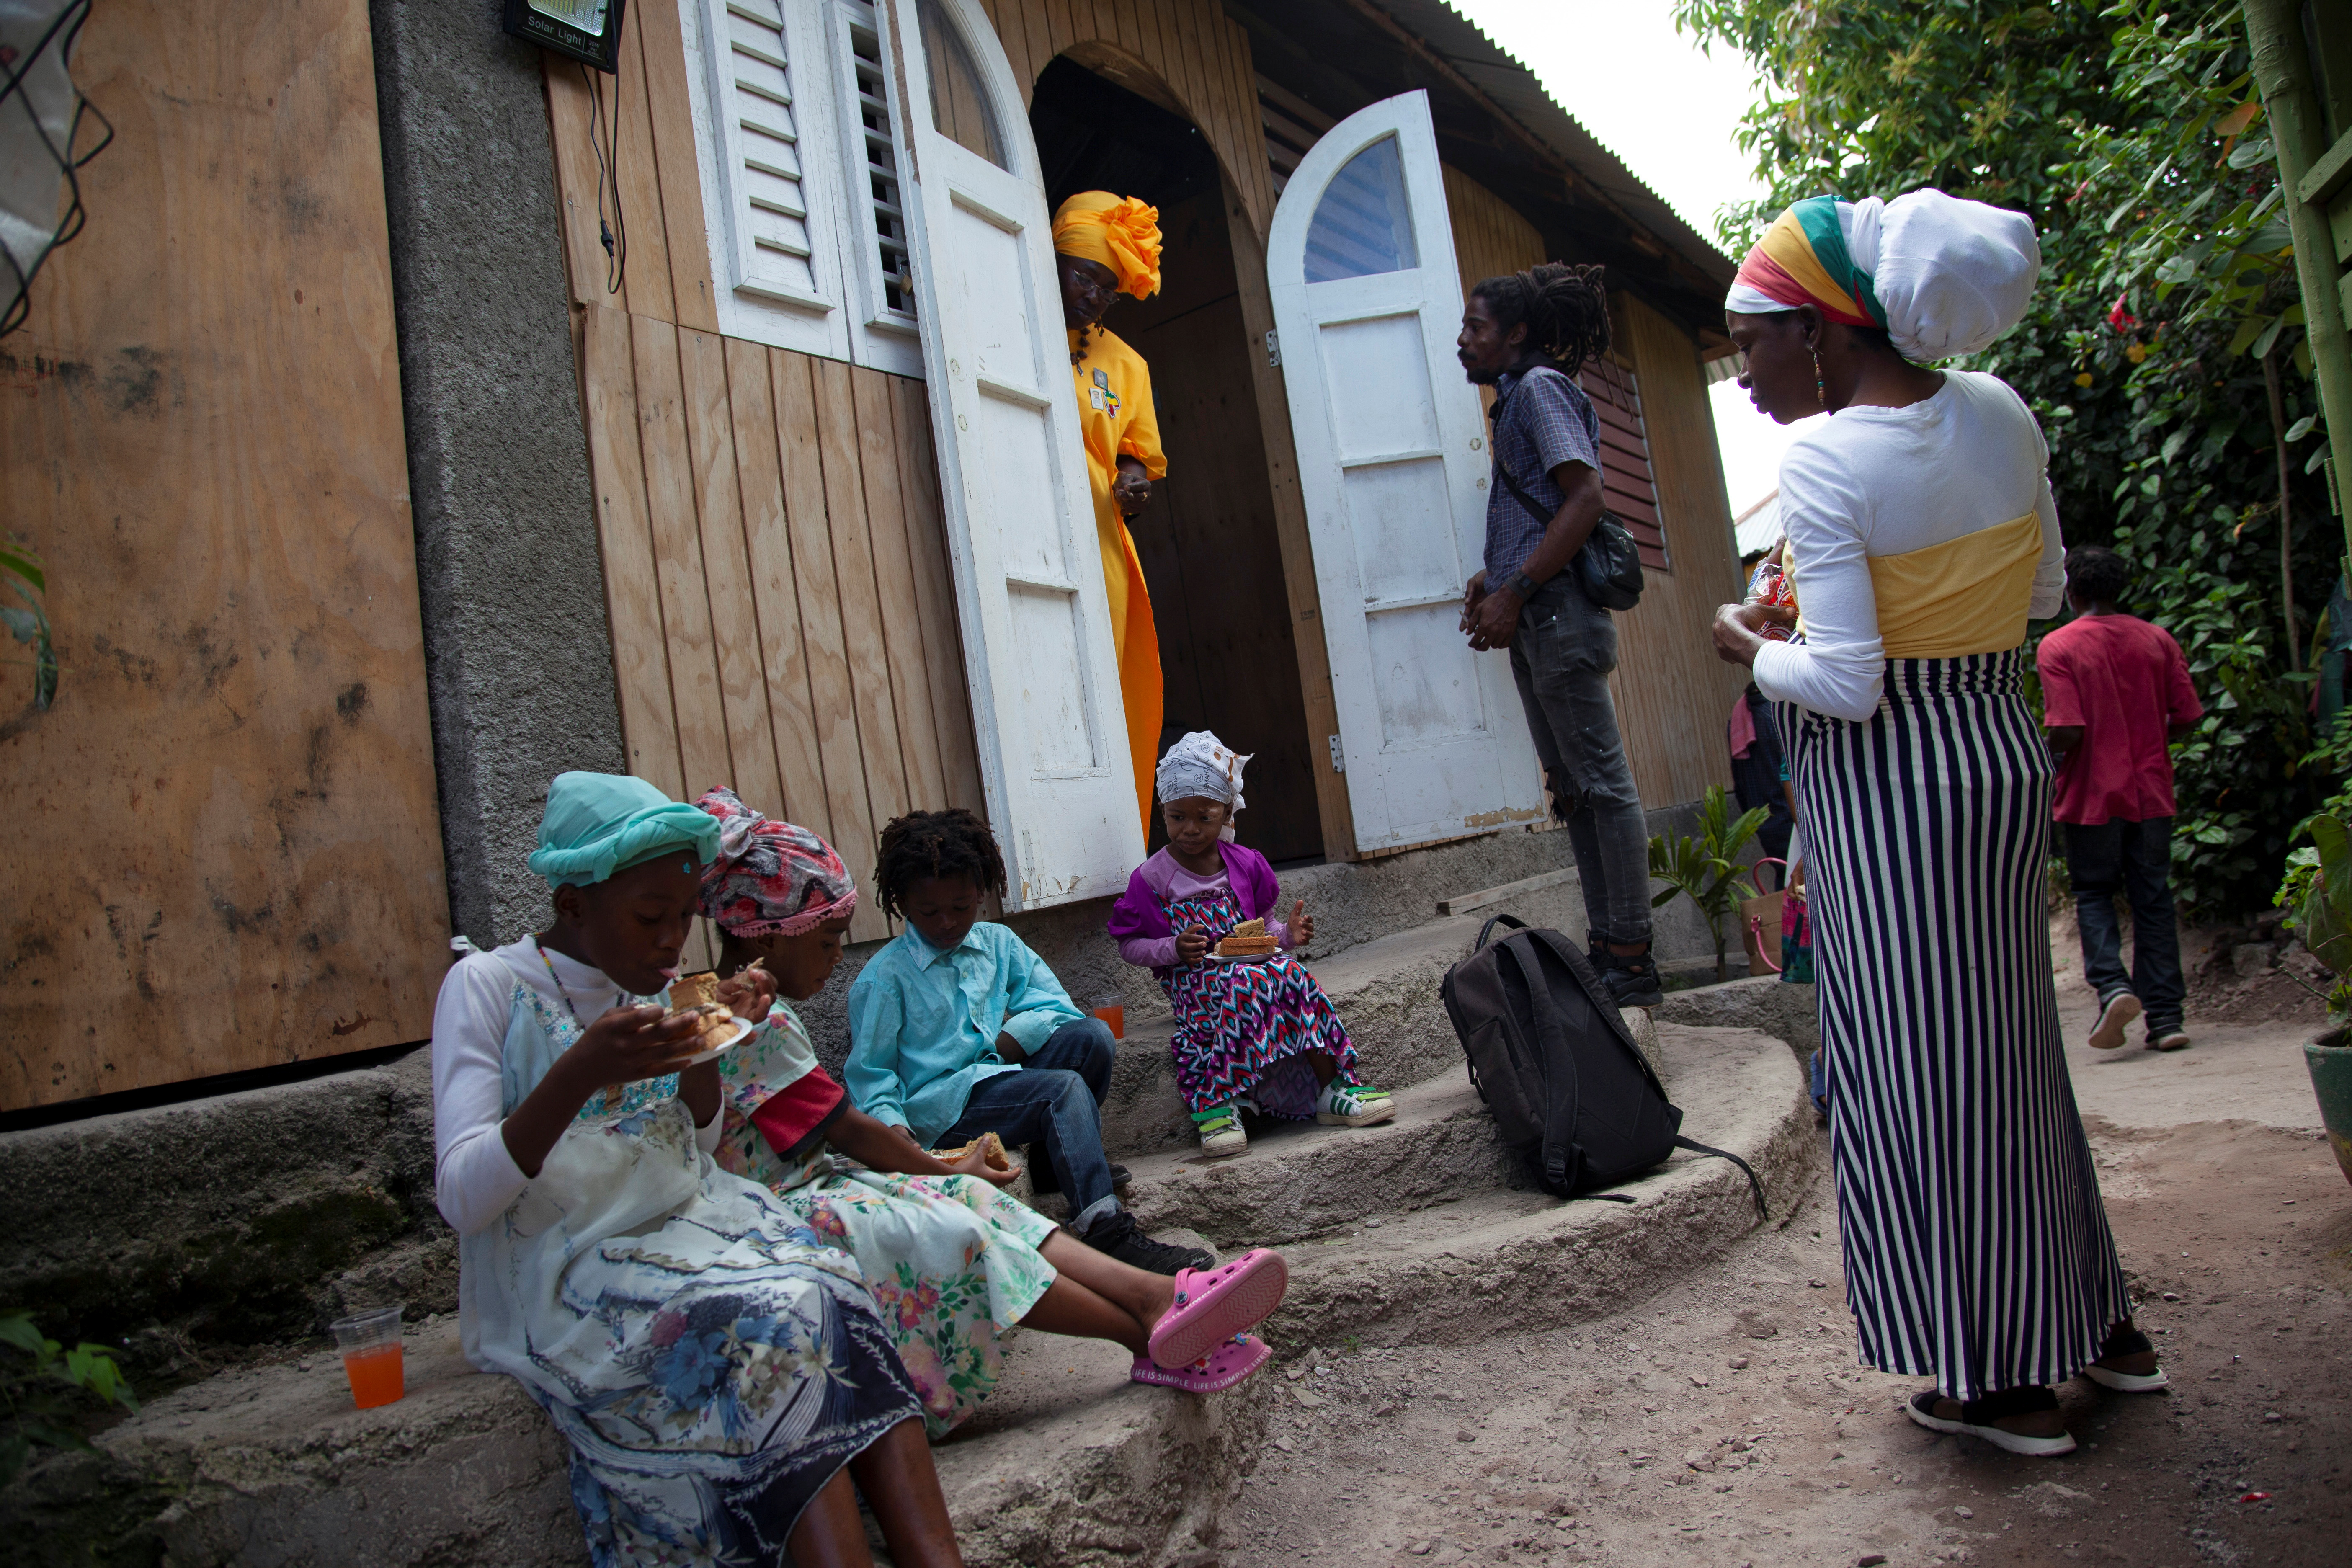 Children eat peanut butter sandwiches during the Sabbath service, at The School of Vision, a Rastafari community in the Blue Mountains, near Kingston, Jamaica, on June 19, 2021. Picture taken June 19, 2021. REUTERS/Ina Sotirova